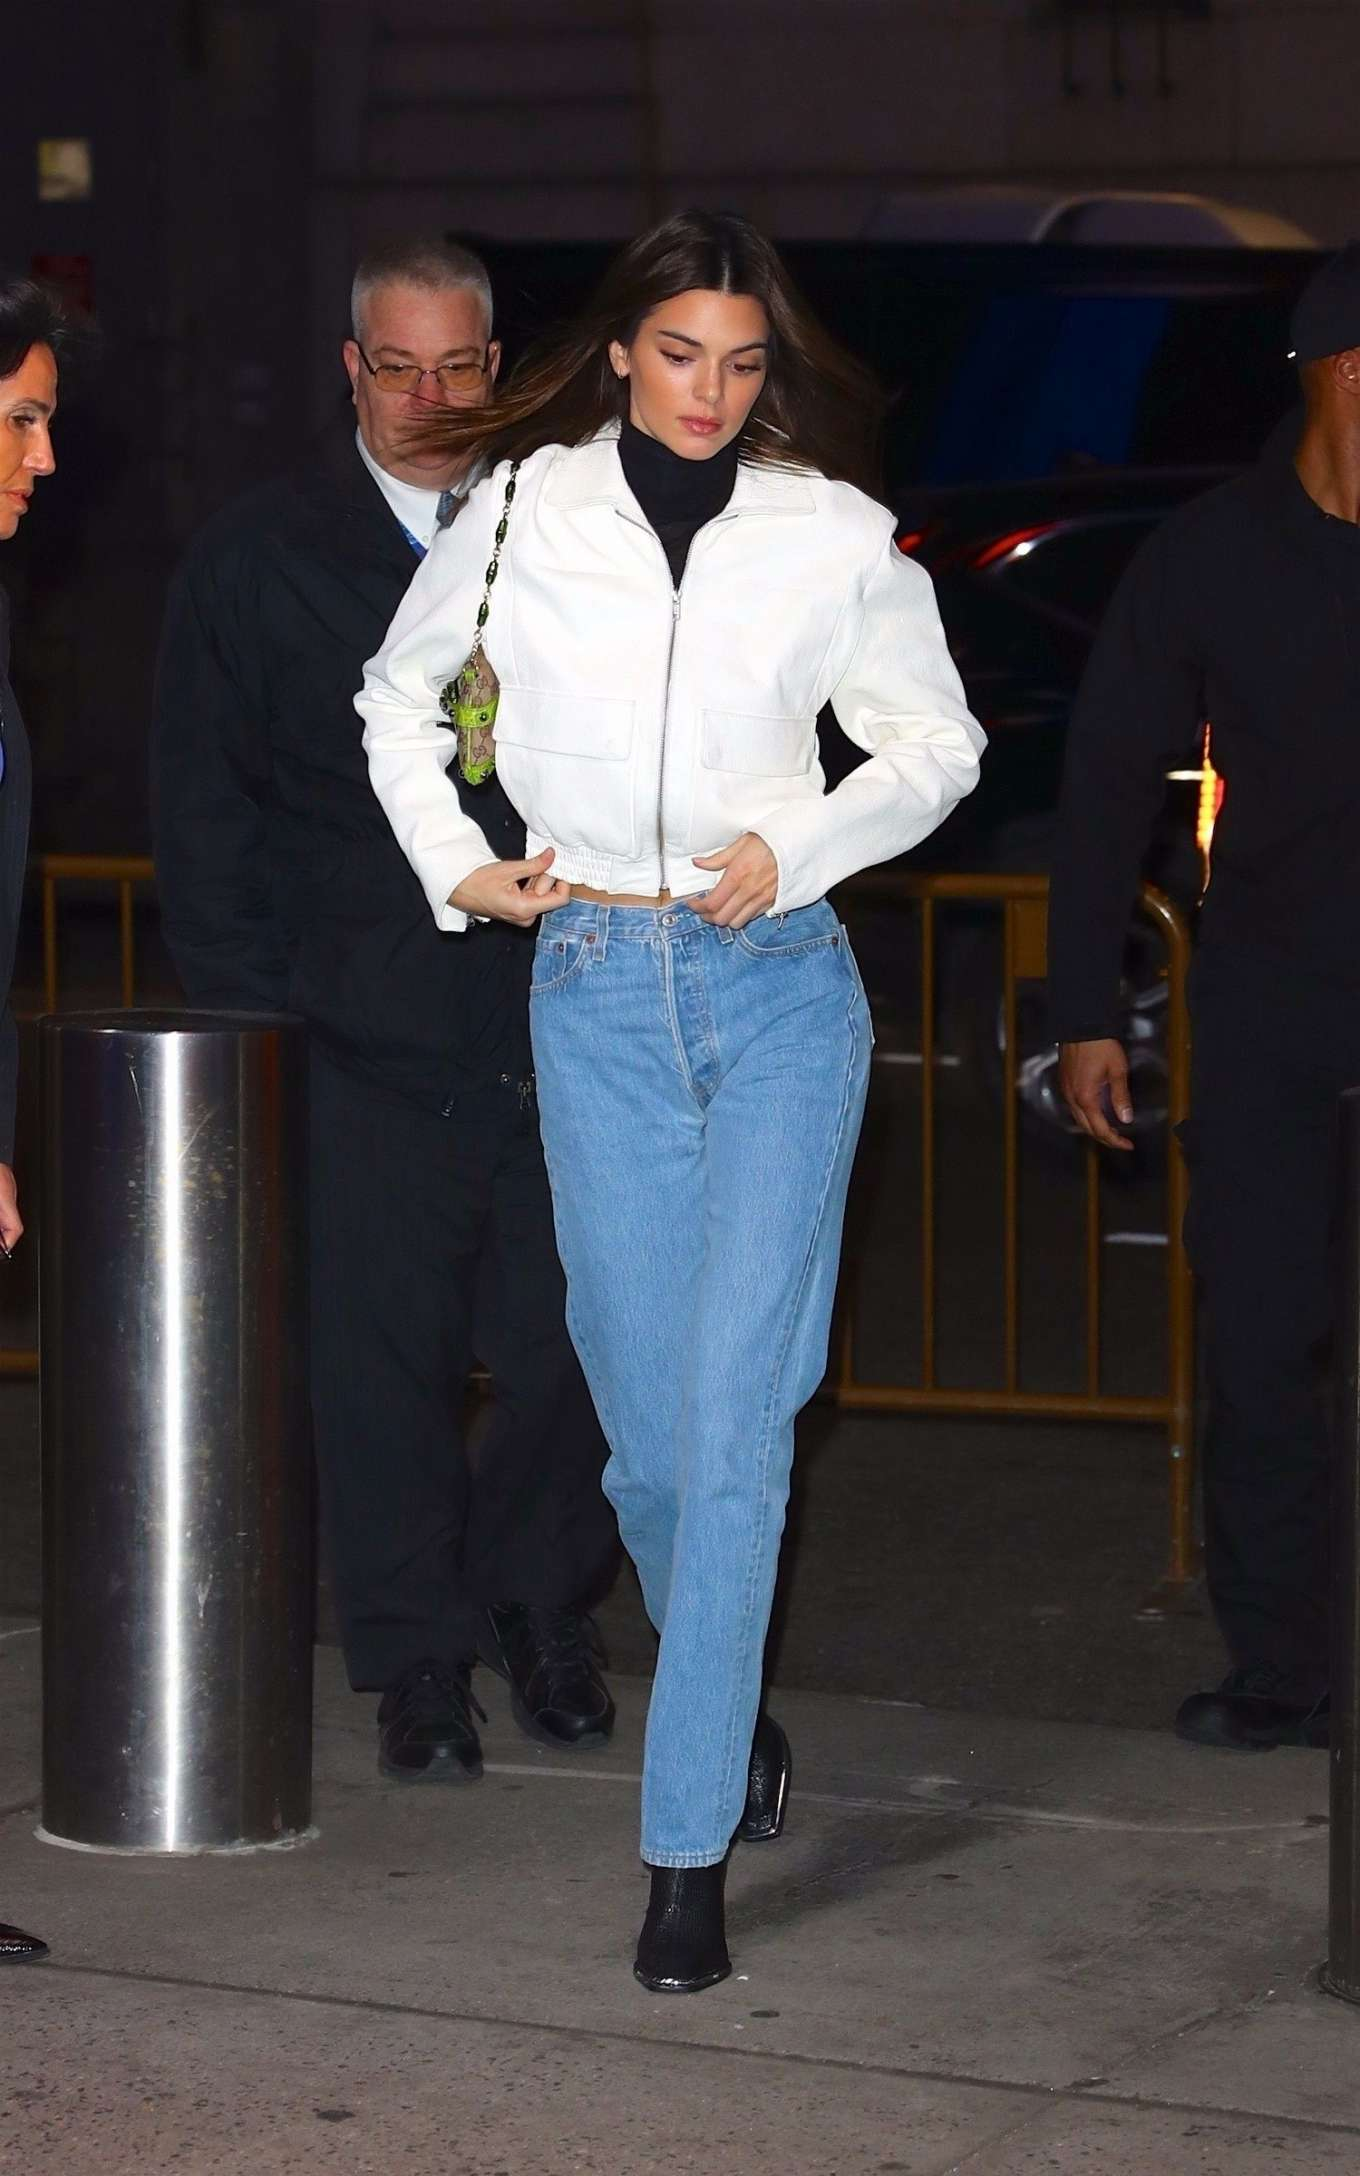 Kendall Jenner 2019 : Kendall Jenner – Wearing blue jeans in NY-37